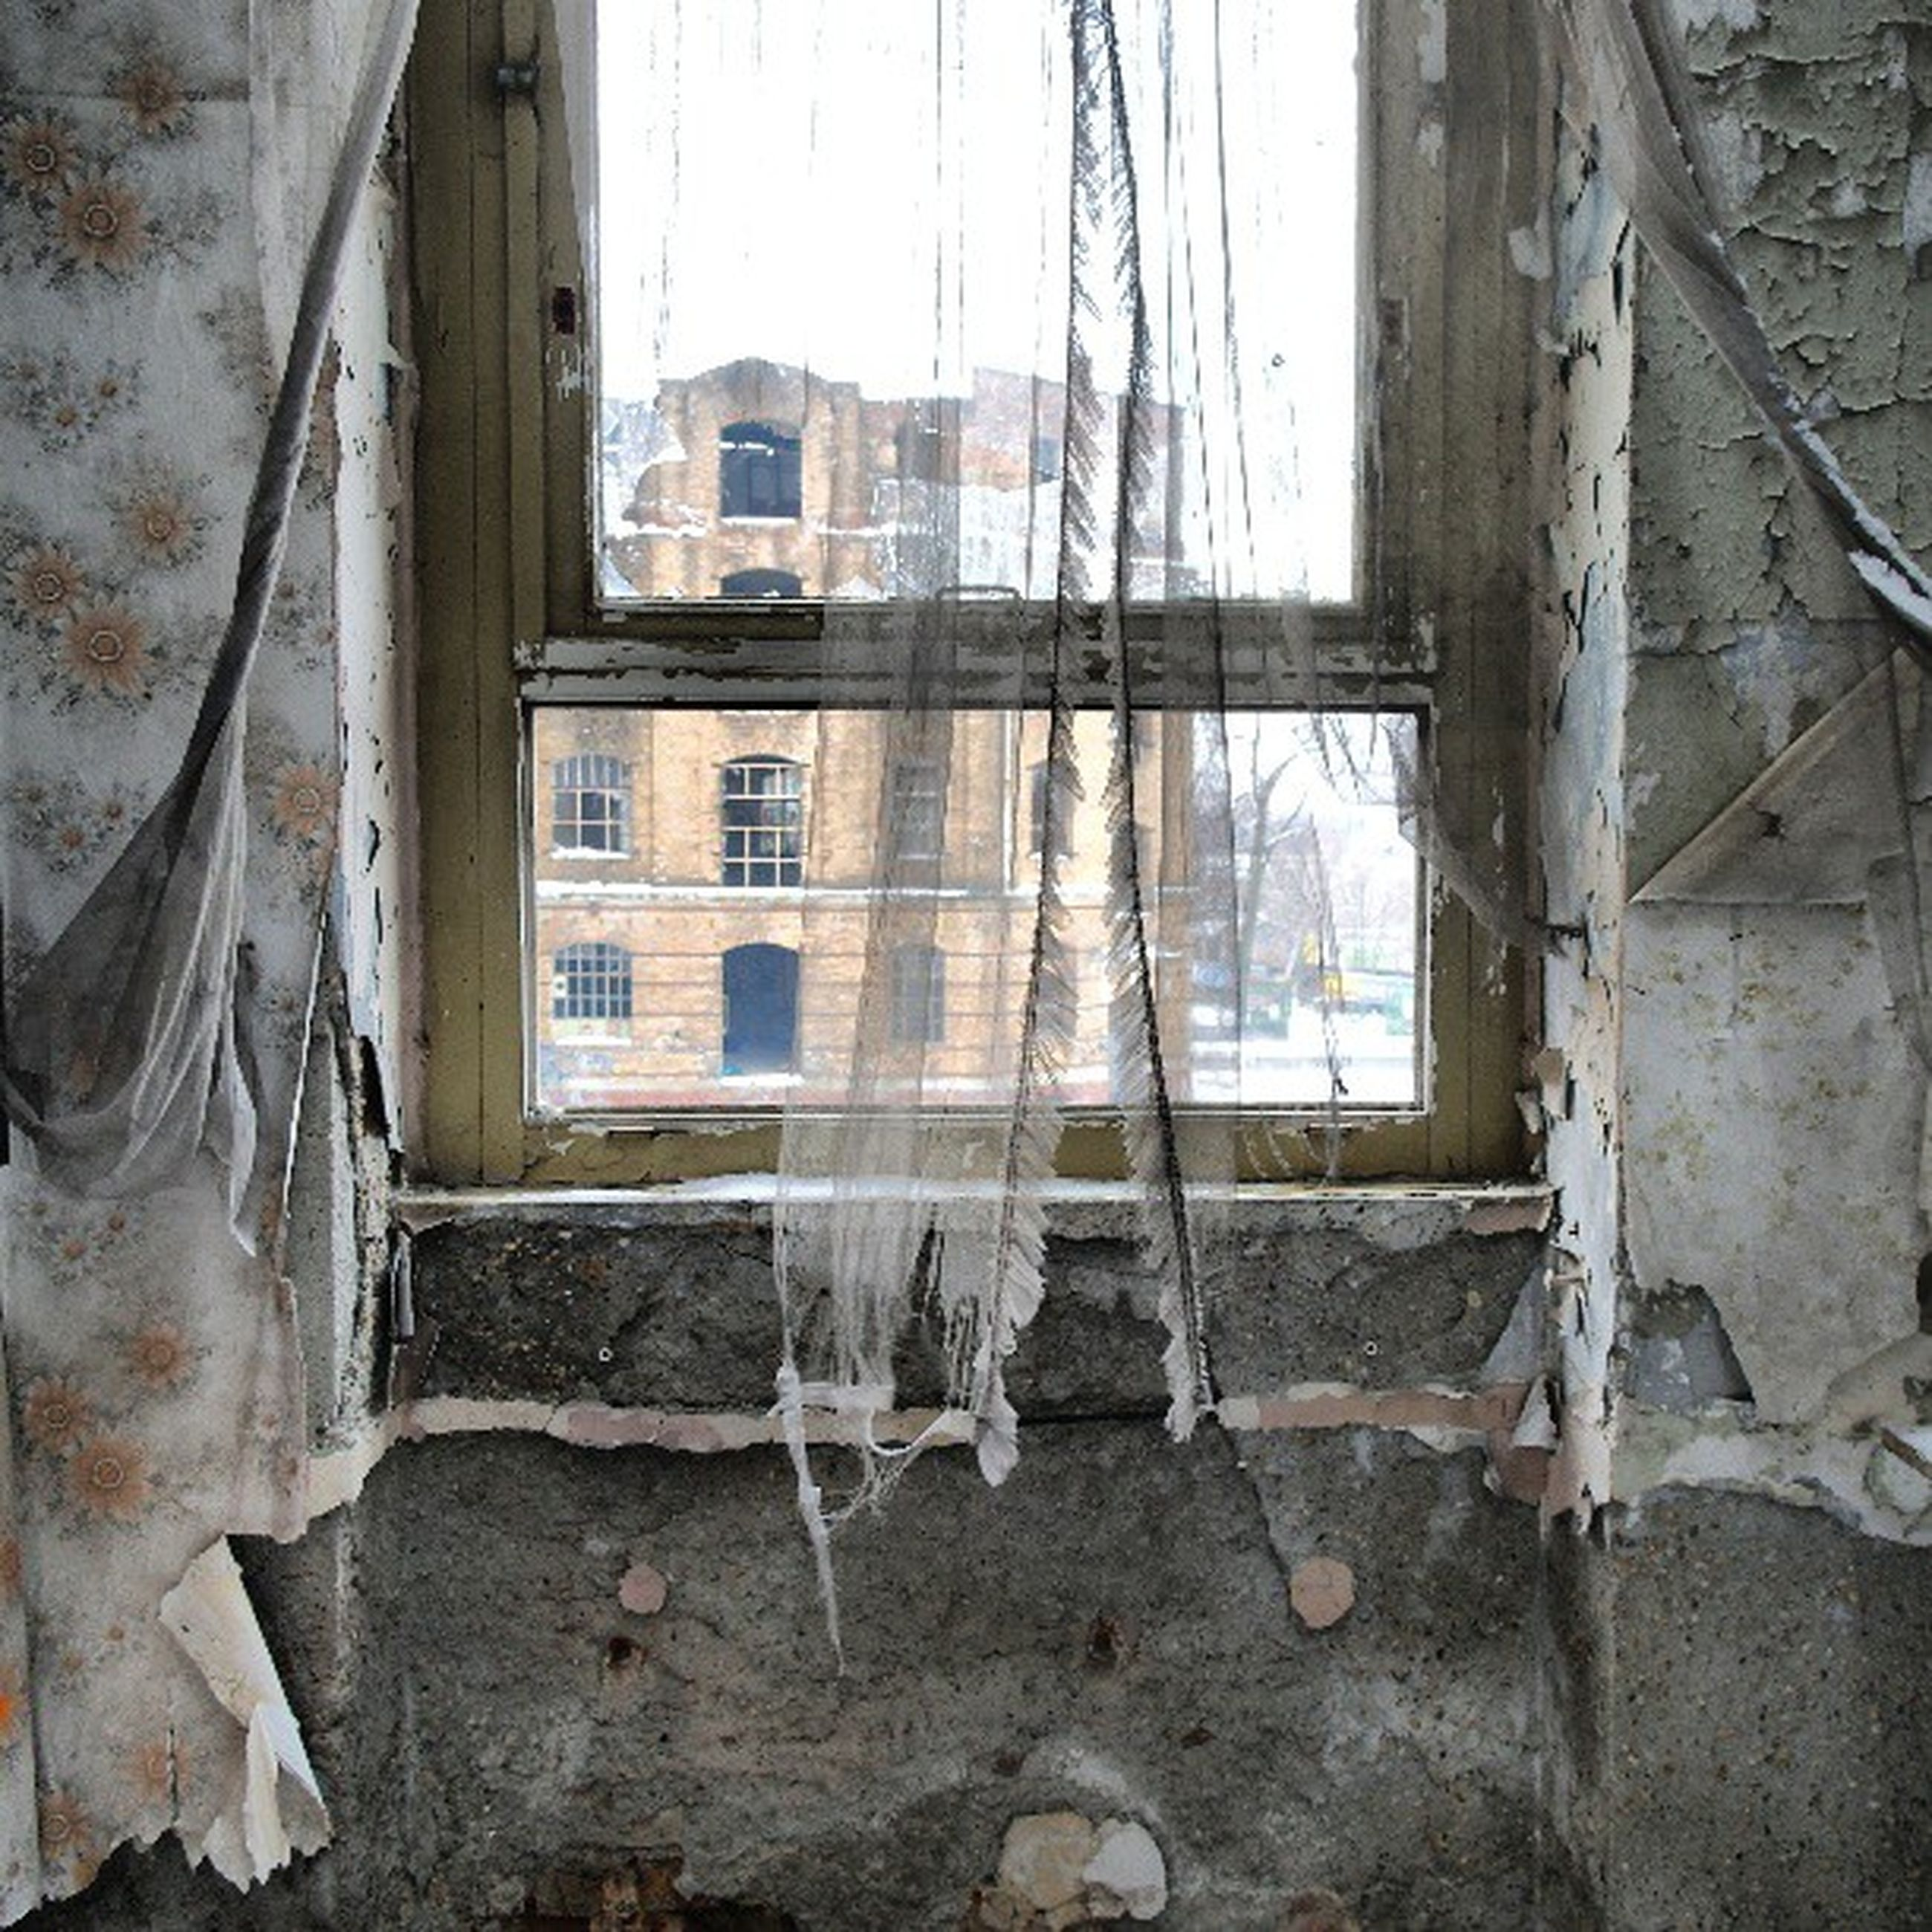 architecture, built structure, building exterior, window, abandoned, house, damaged, obsolete, old, run-down, residential structure, building, day, residential building, weathered, deterioration, wall - building feature, bad condition, no people, outdoors